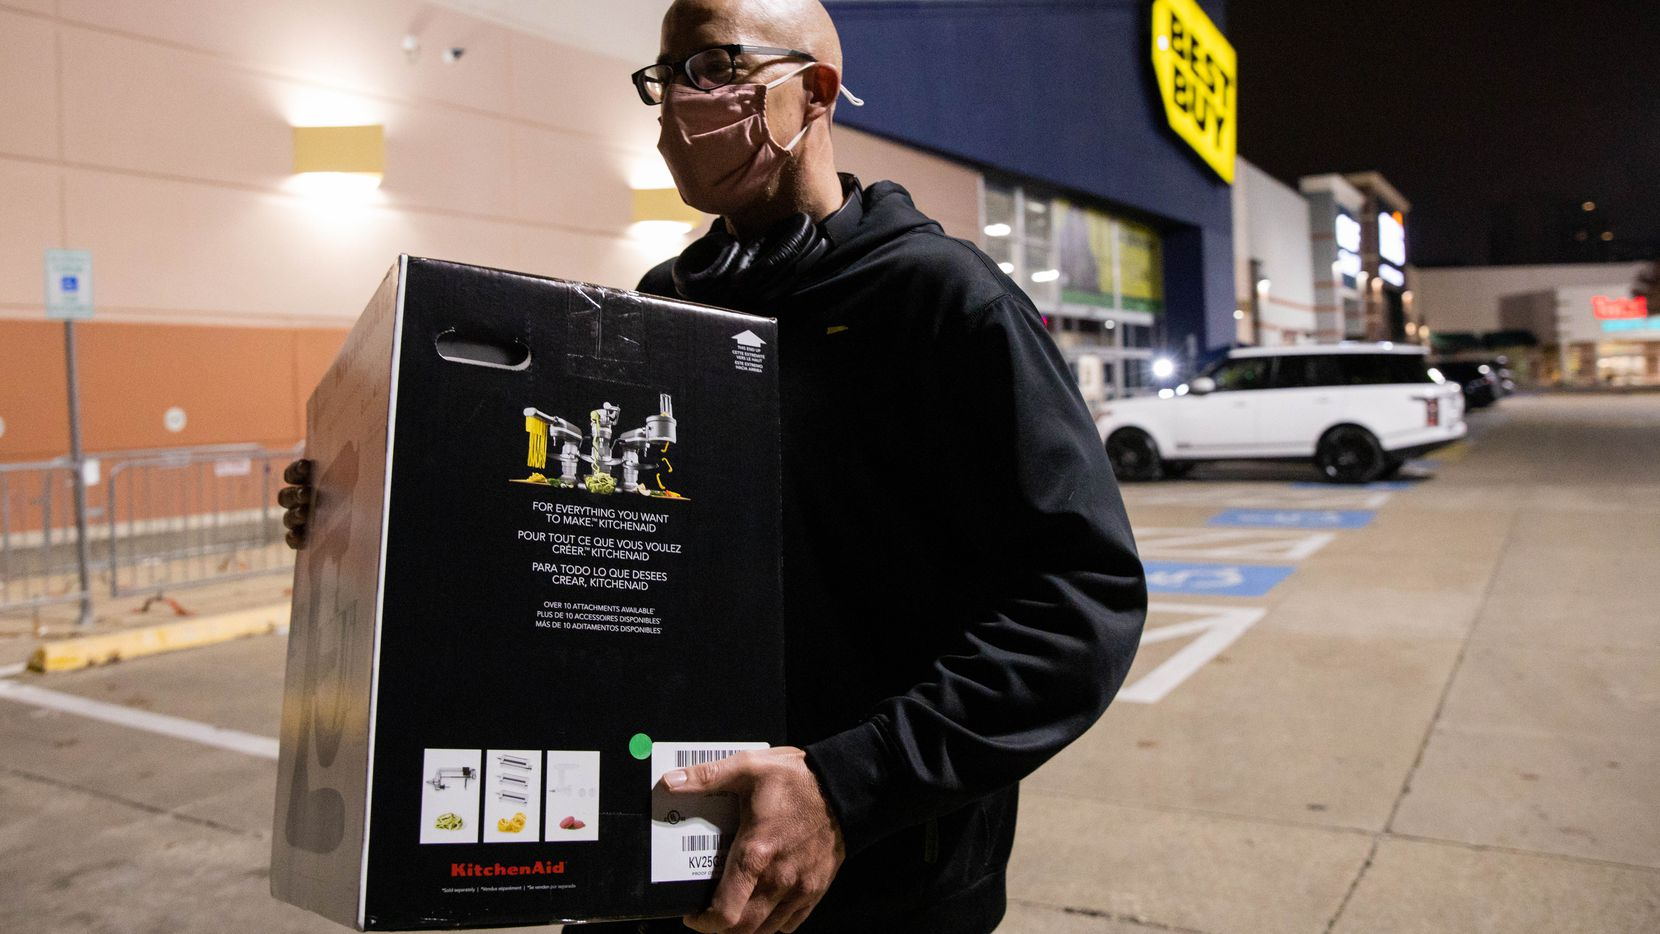 Sean Berube, who was visiting from Arizona, walked out of Best Buy with a KitchenAid mixer on Black Friday last year in Dallas.